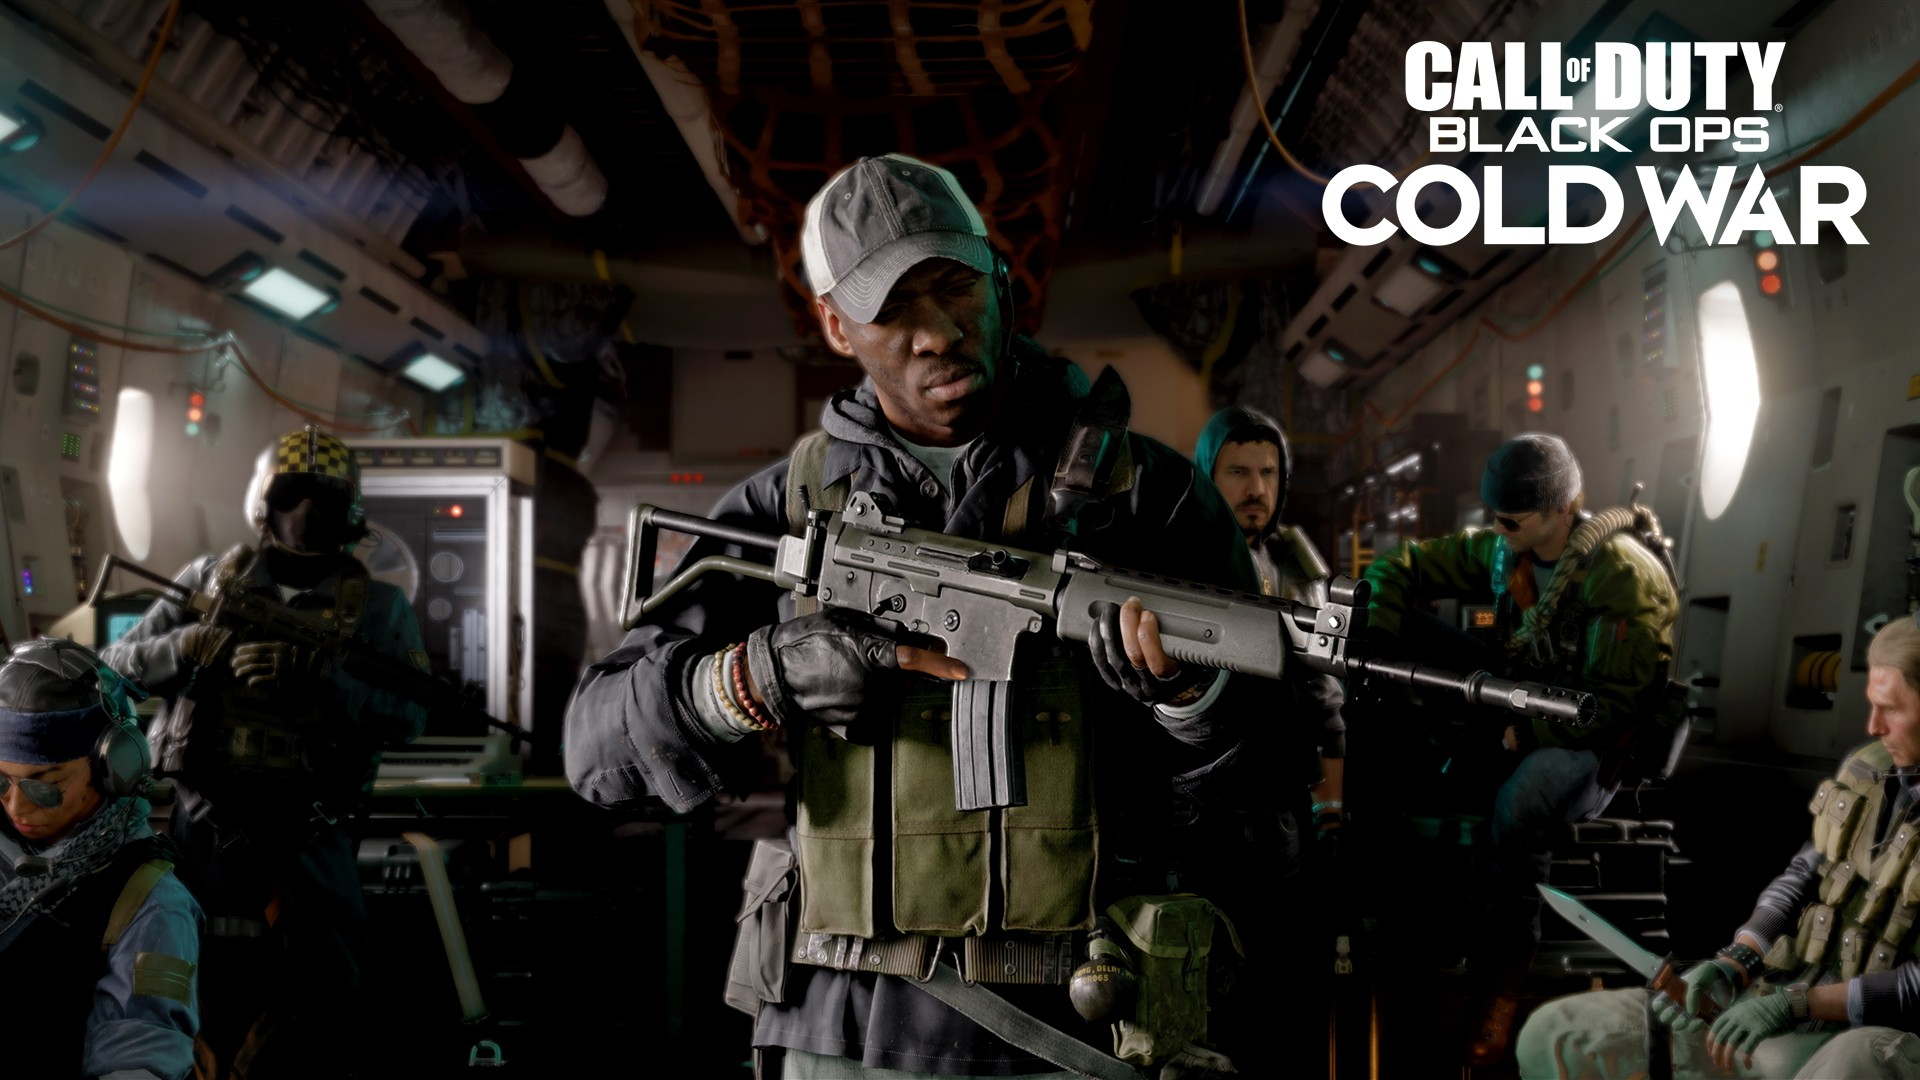 Video For Call of Duty: Black Ops Cold War Global Multiplayer Reveal